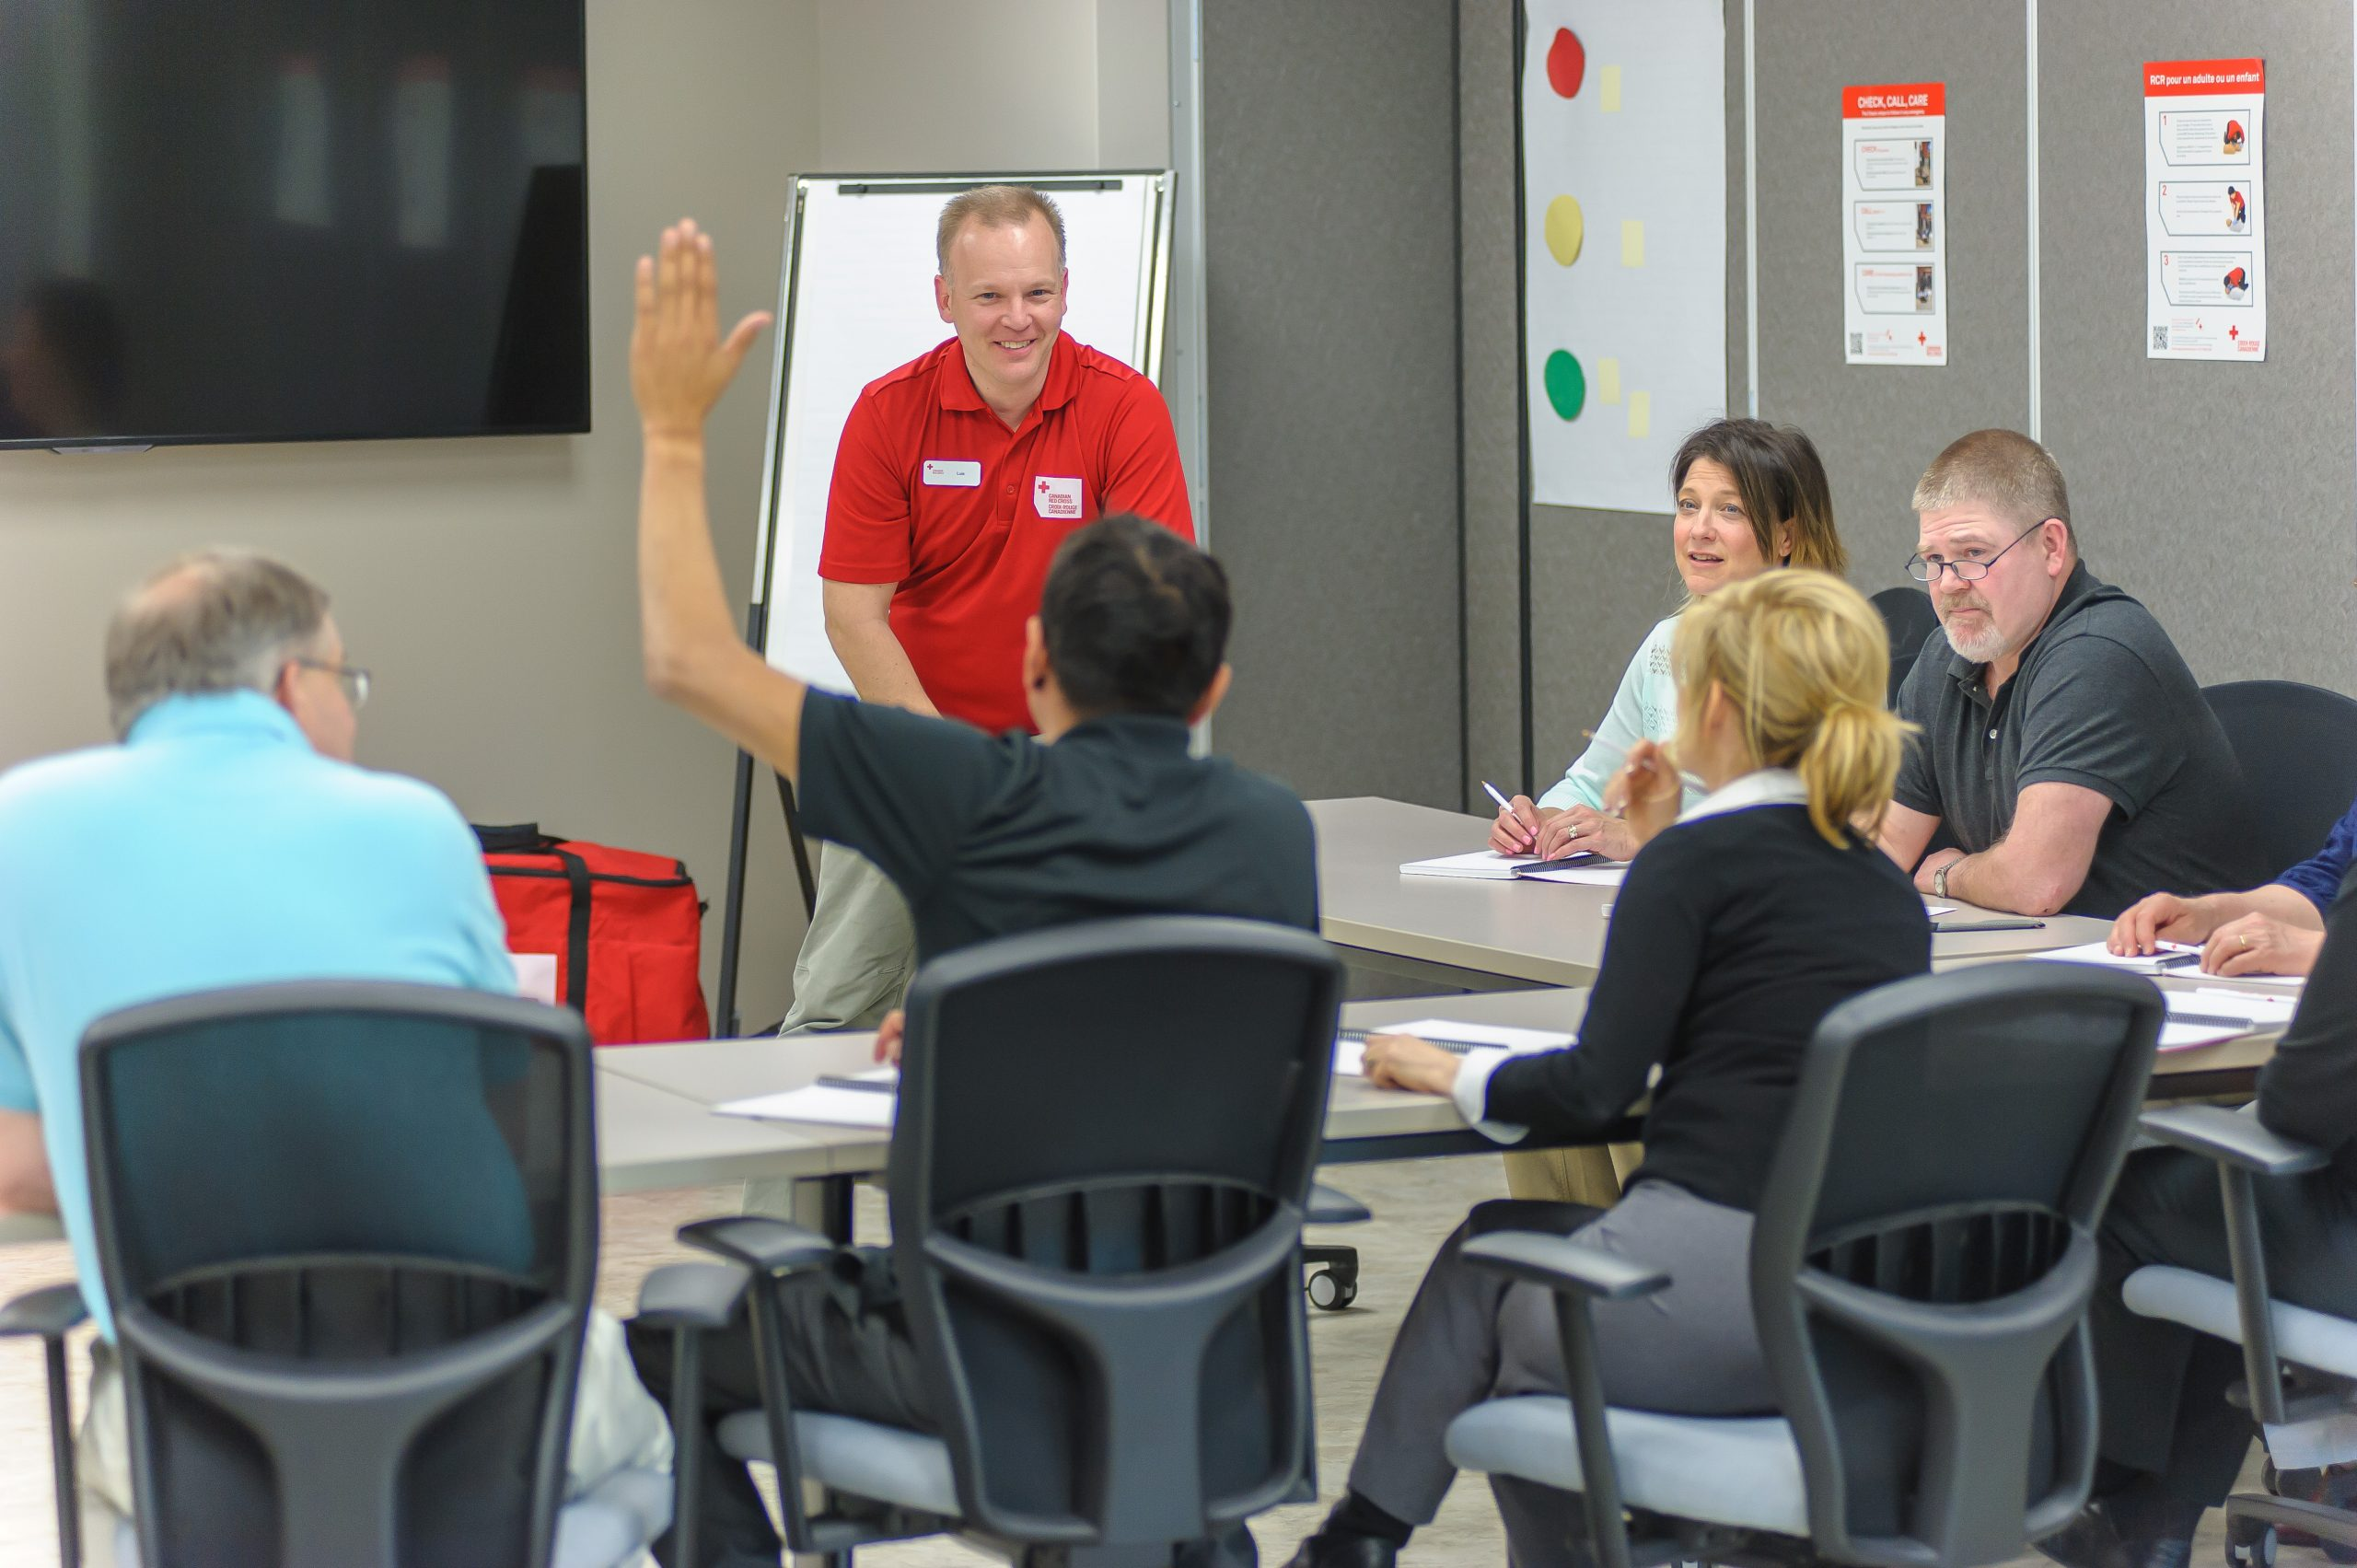 Red Cross Instructor | Lifesavers First Aid Training